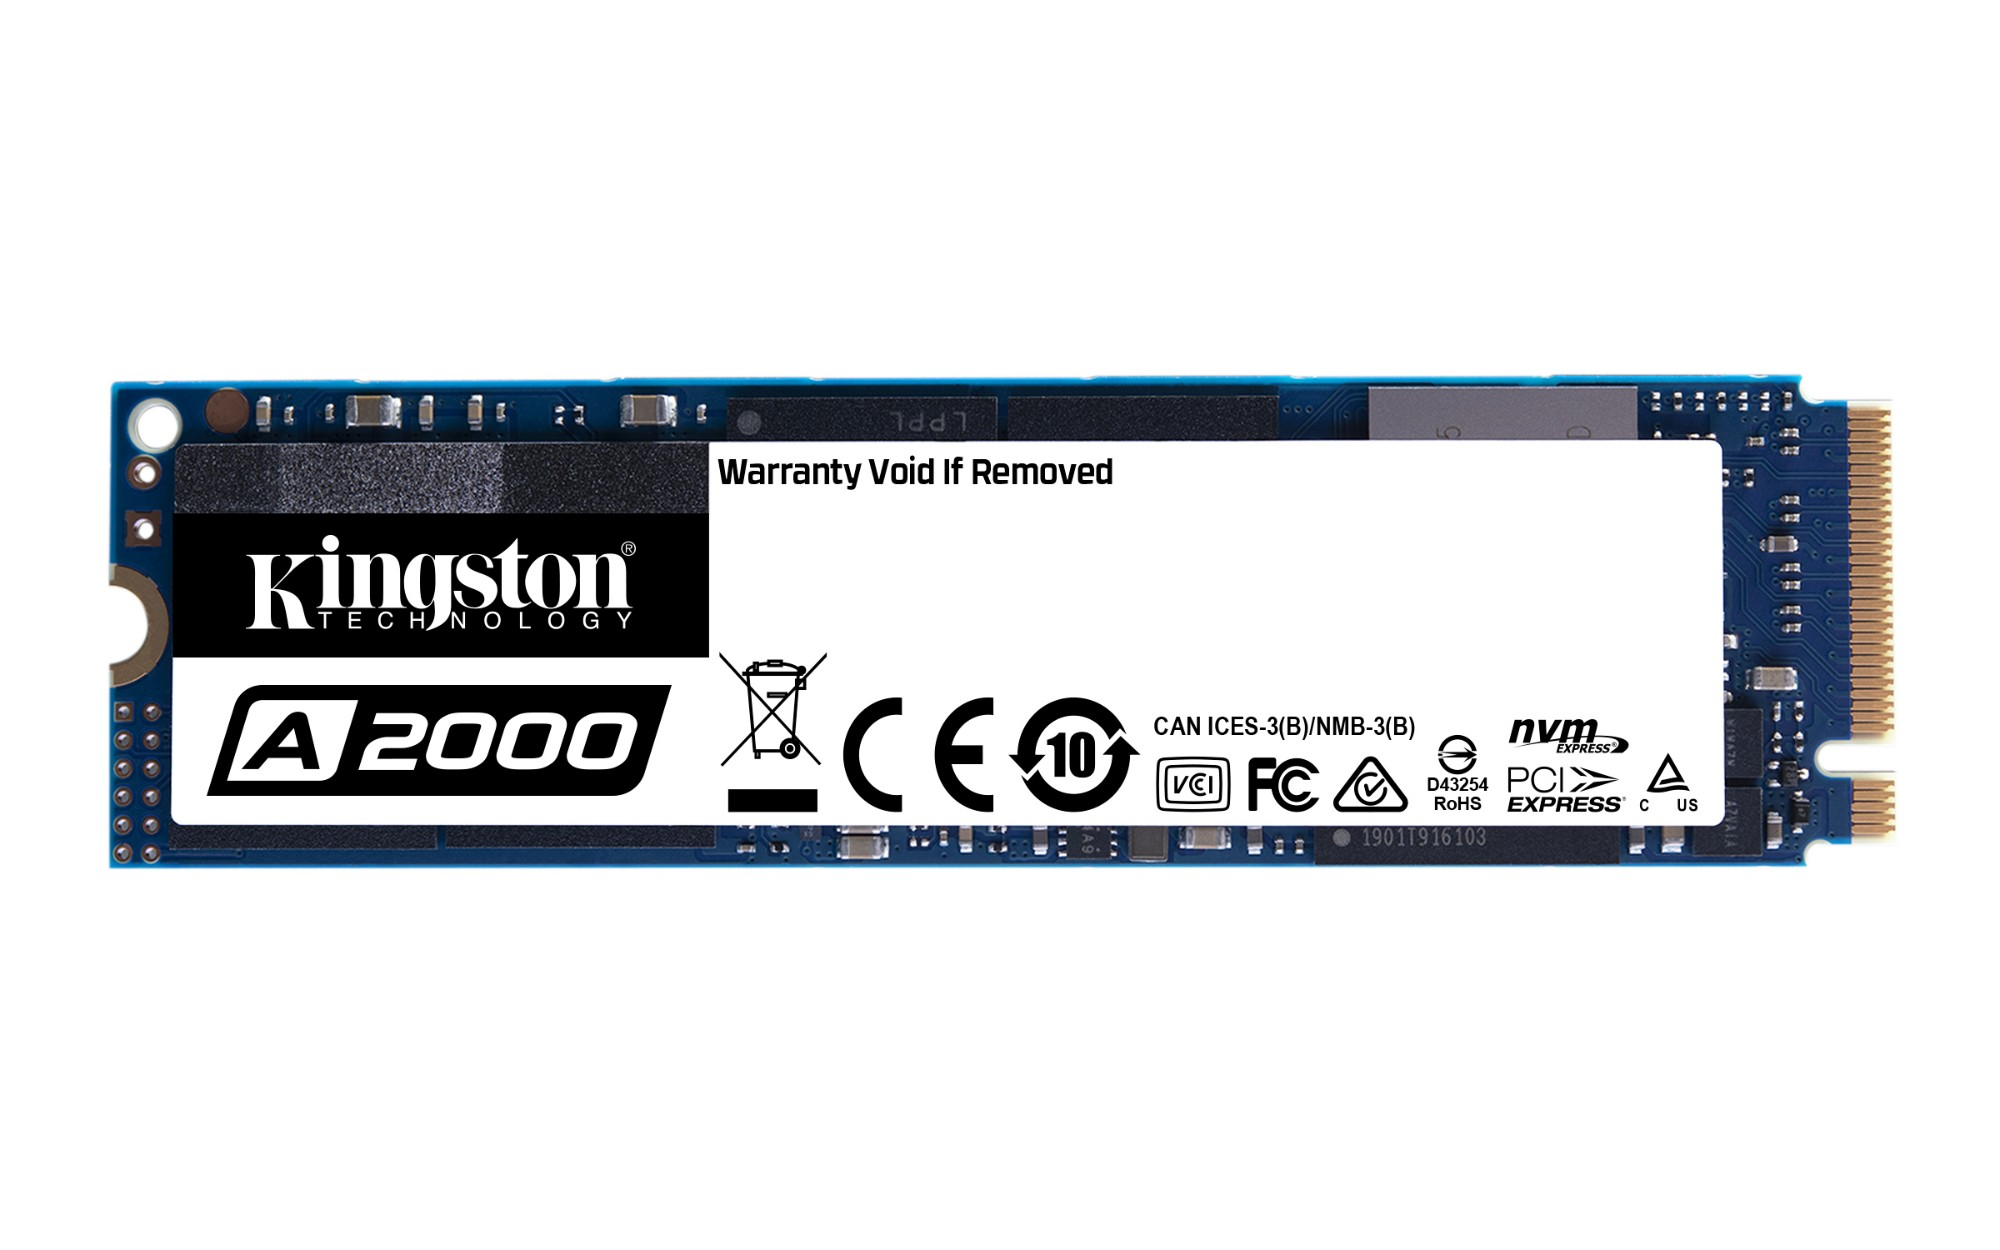 Kingston Technology A2000 internal solid state drive M.2 500 GB PCI Express 3.0 NVMe